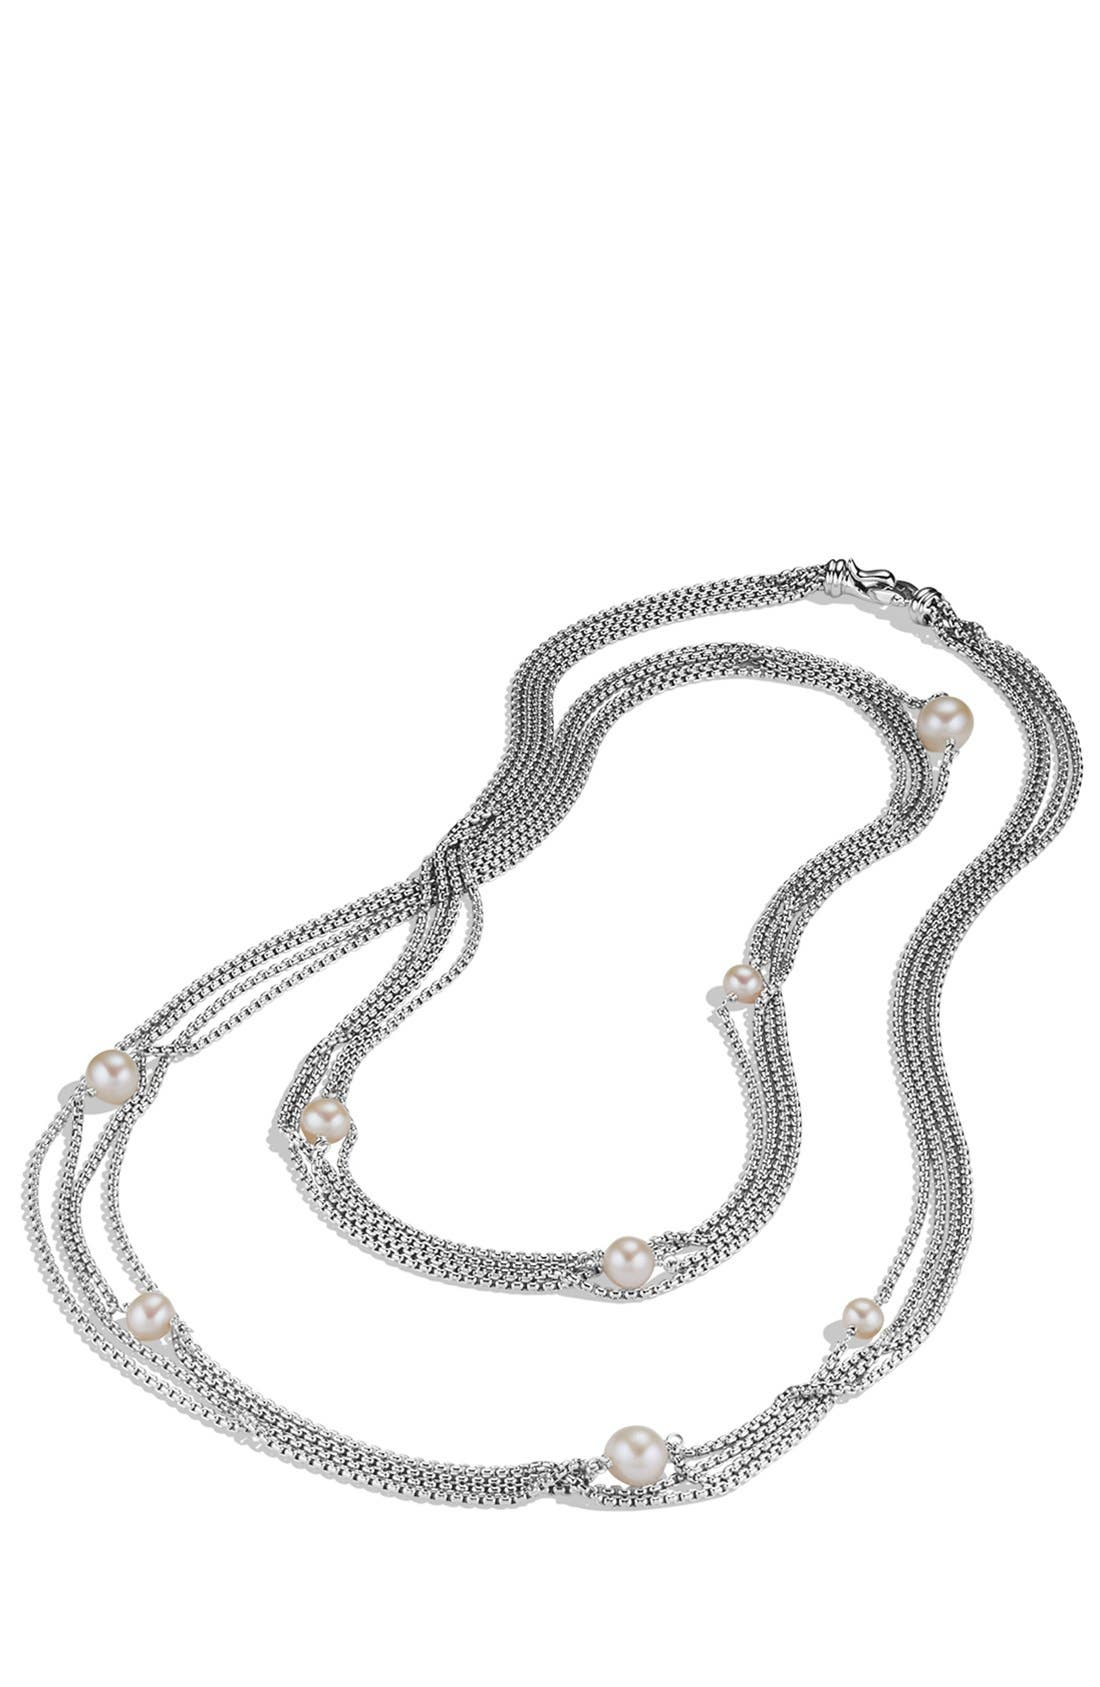 DAVID YURMAN, Four-Row Chain Necklace with Pearls, Alternate thumbnail 3, color, PEARL